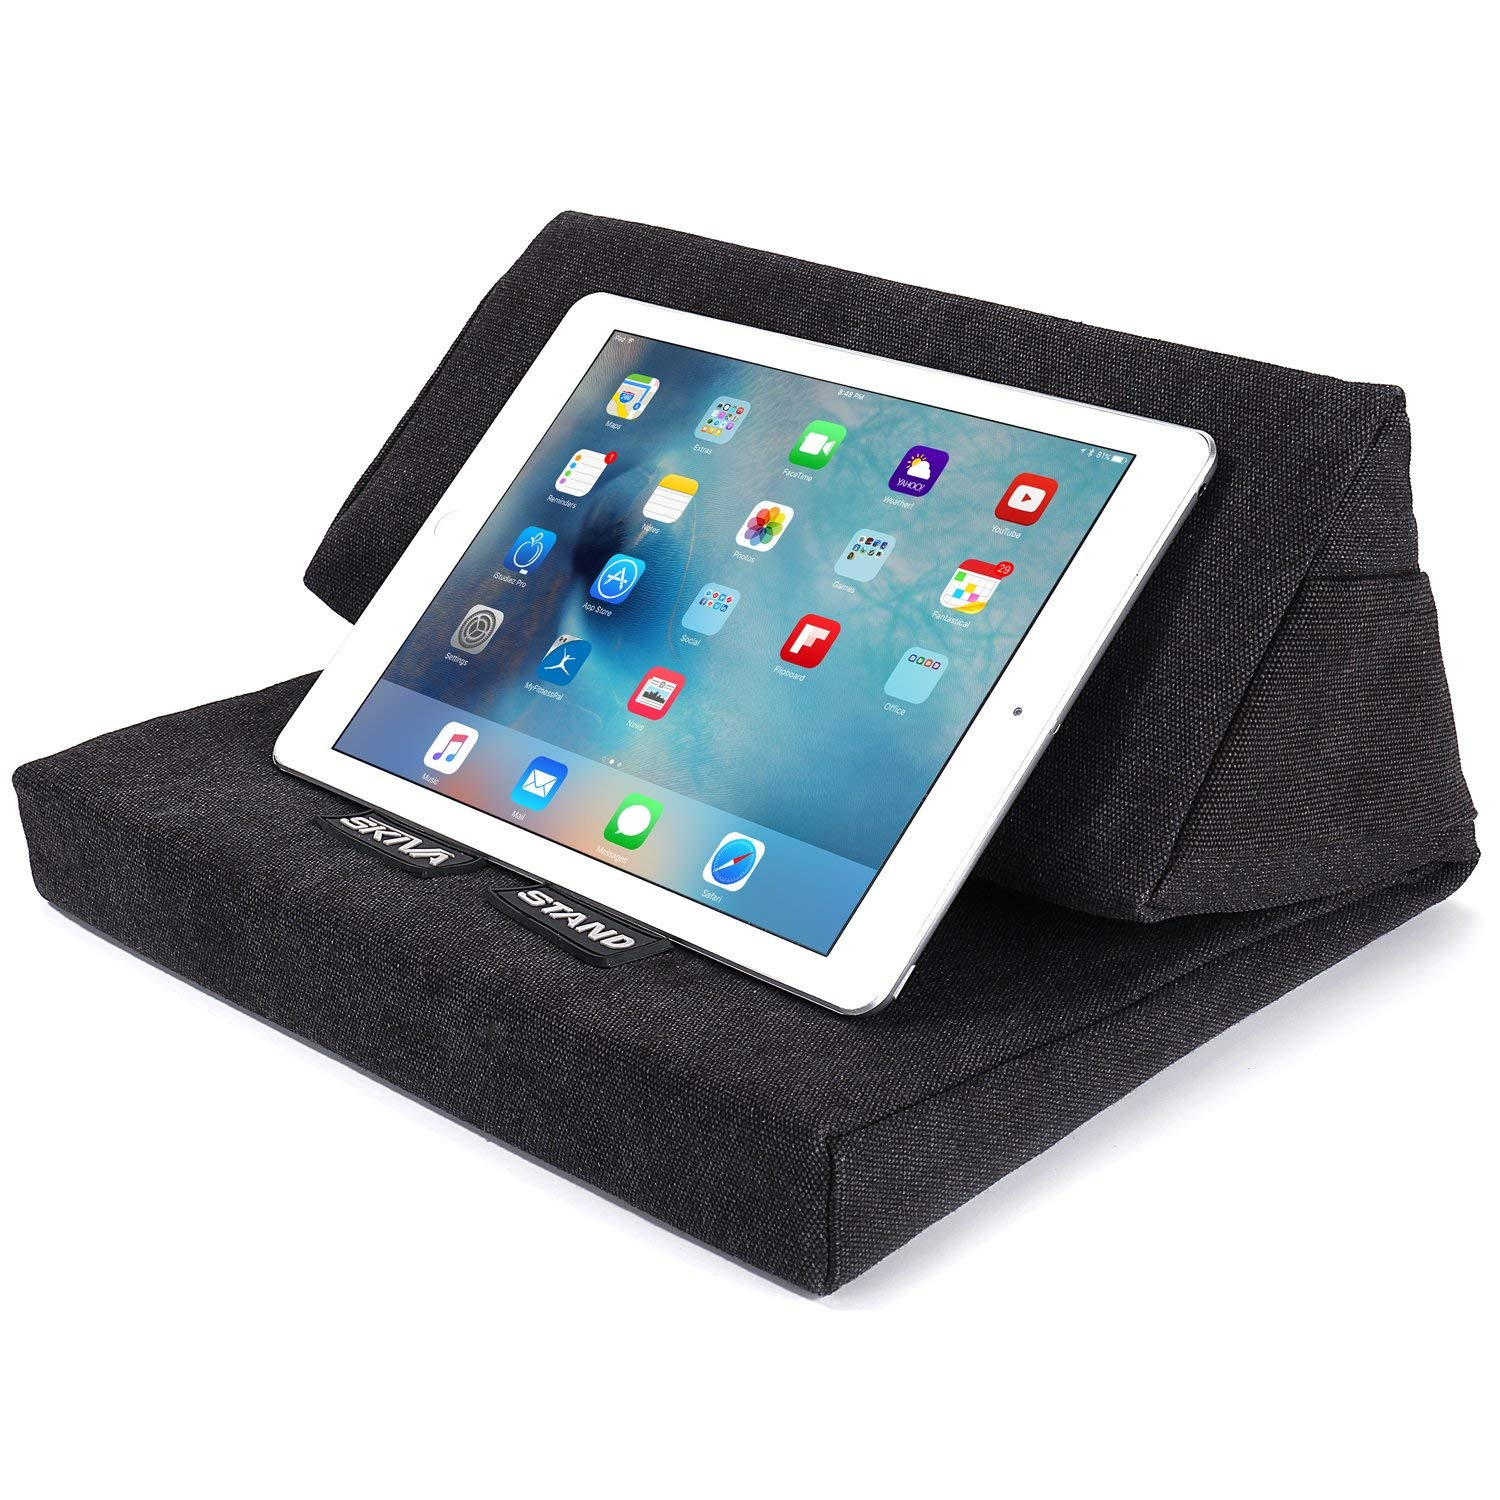 SKIVA EasyStand Pad Pillow Stand